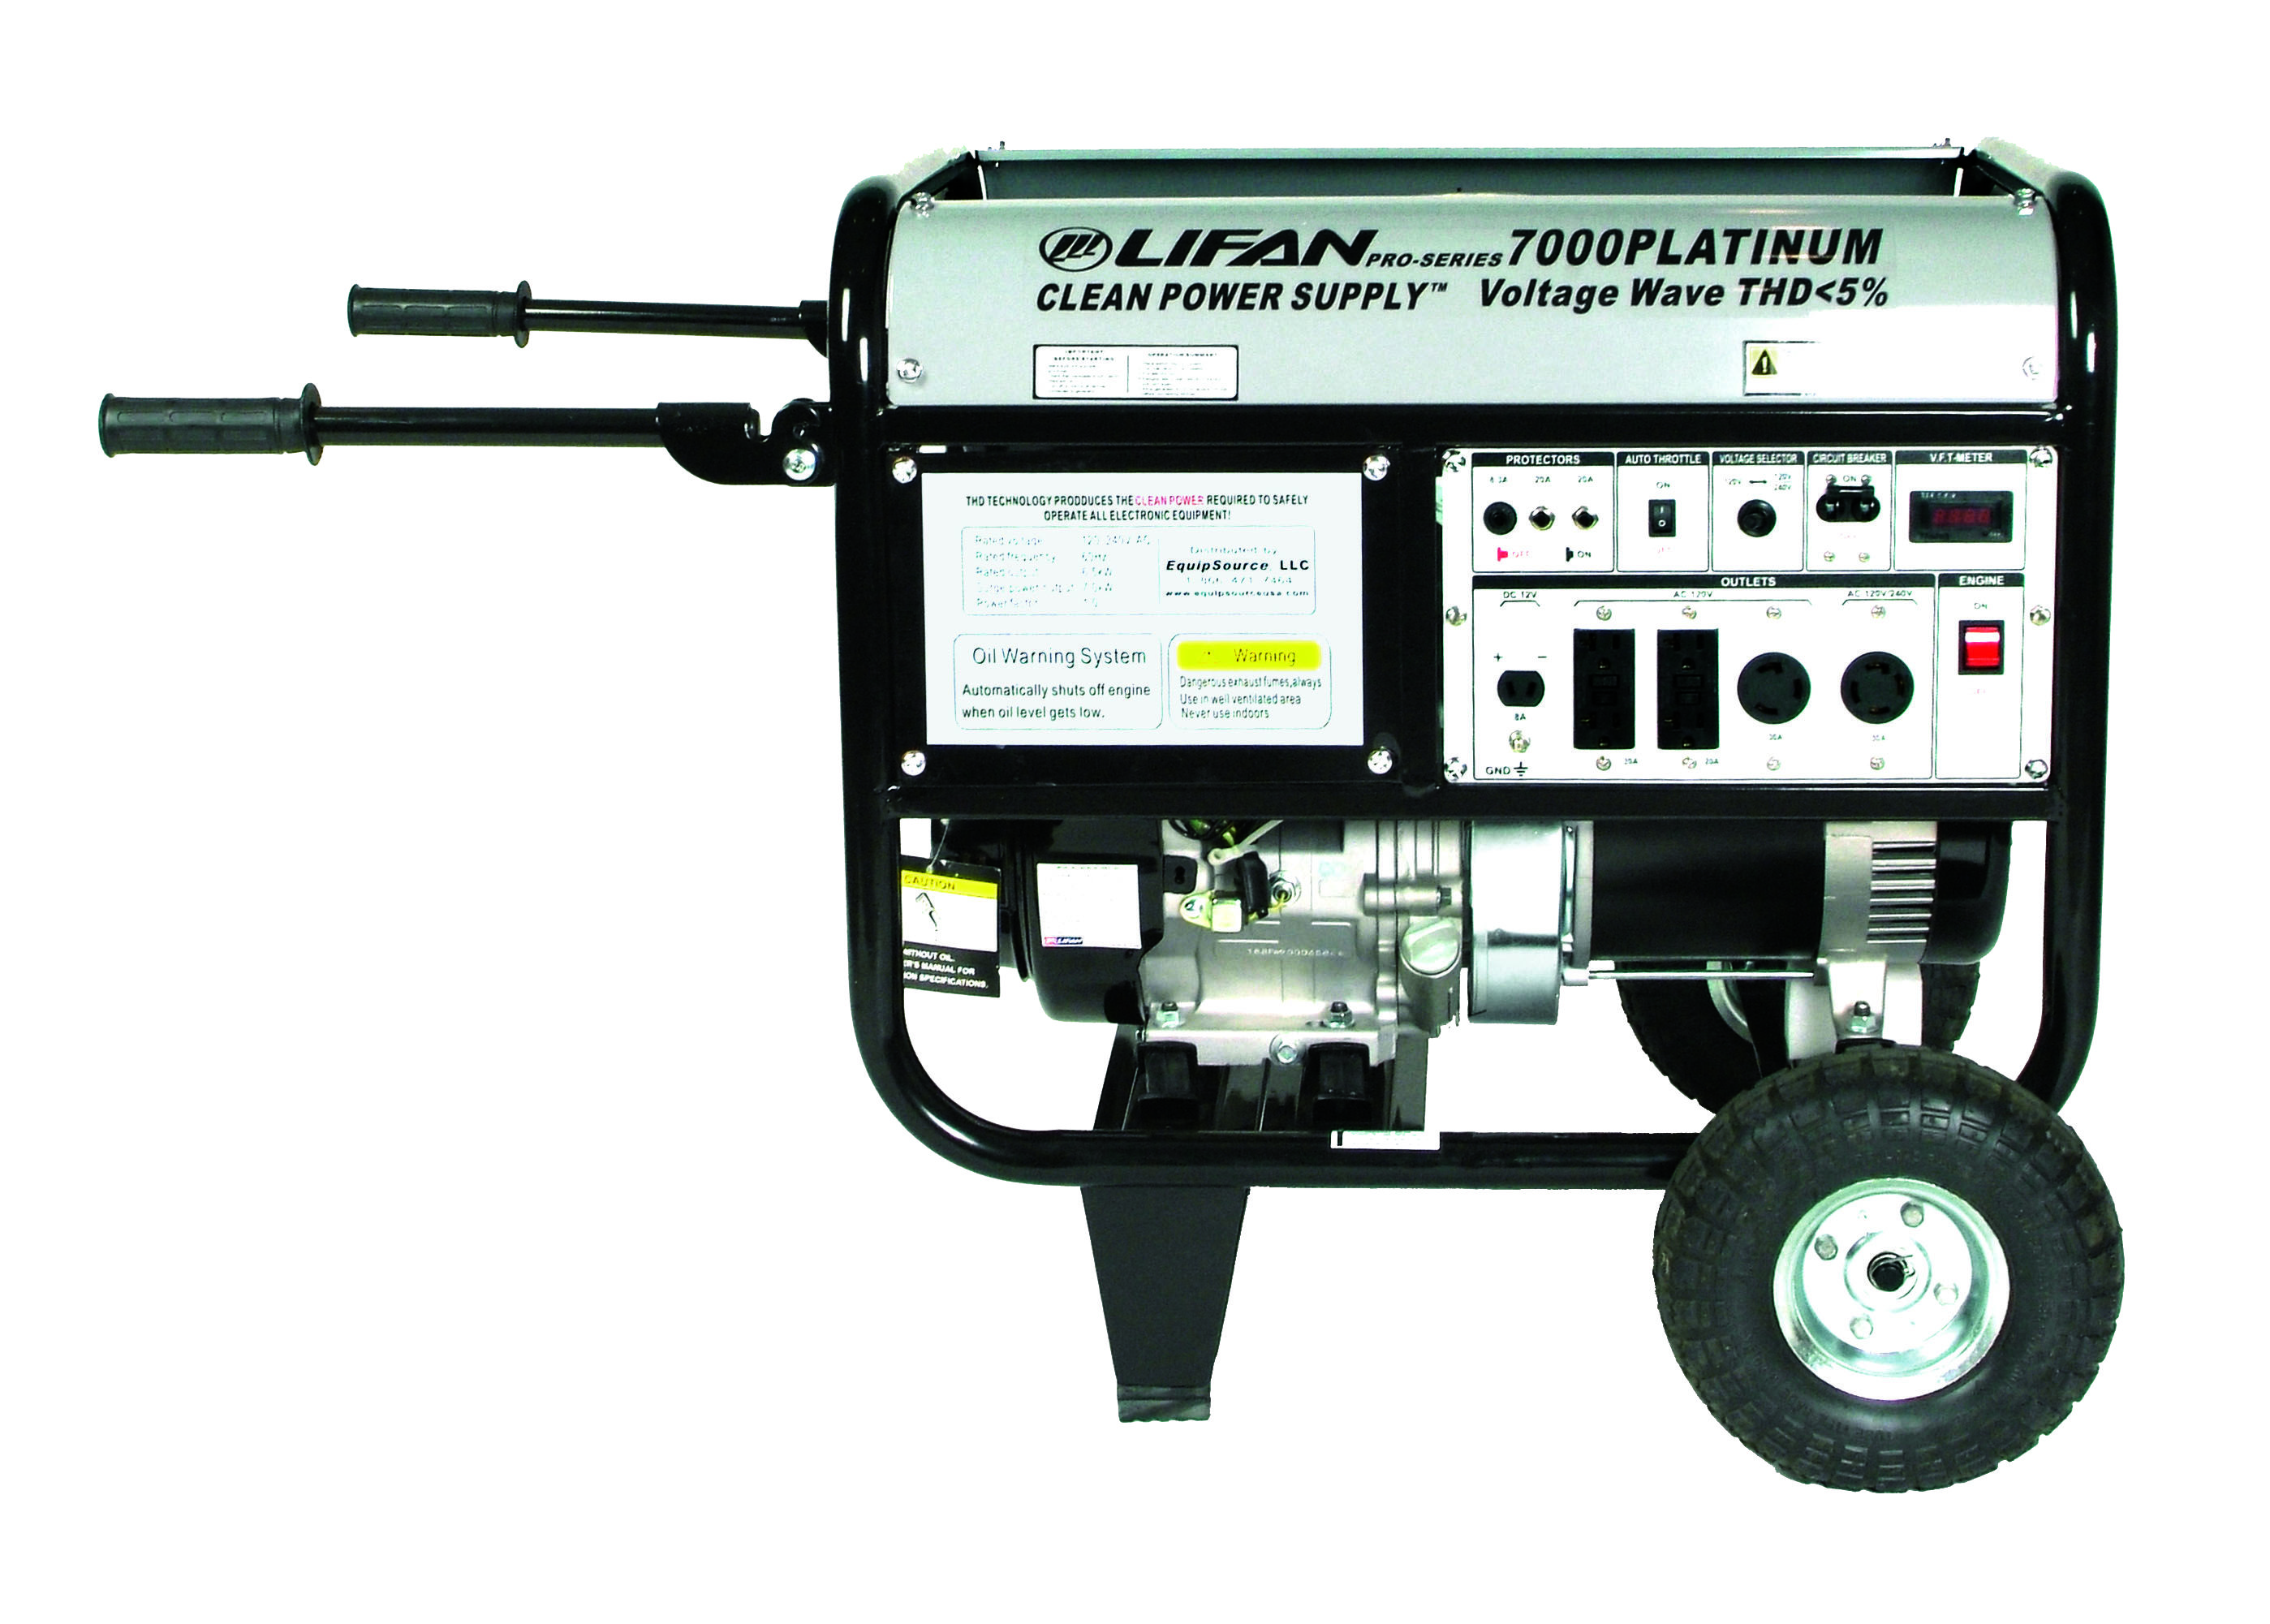 platinum ipl lifan power usa lifan power usa s lf7000ipl lf7000ipl ca generators are part of our platinum portable generator series our platinum portable generators contain low thd